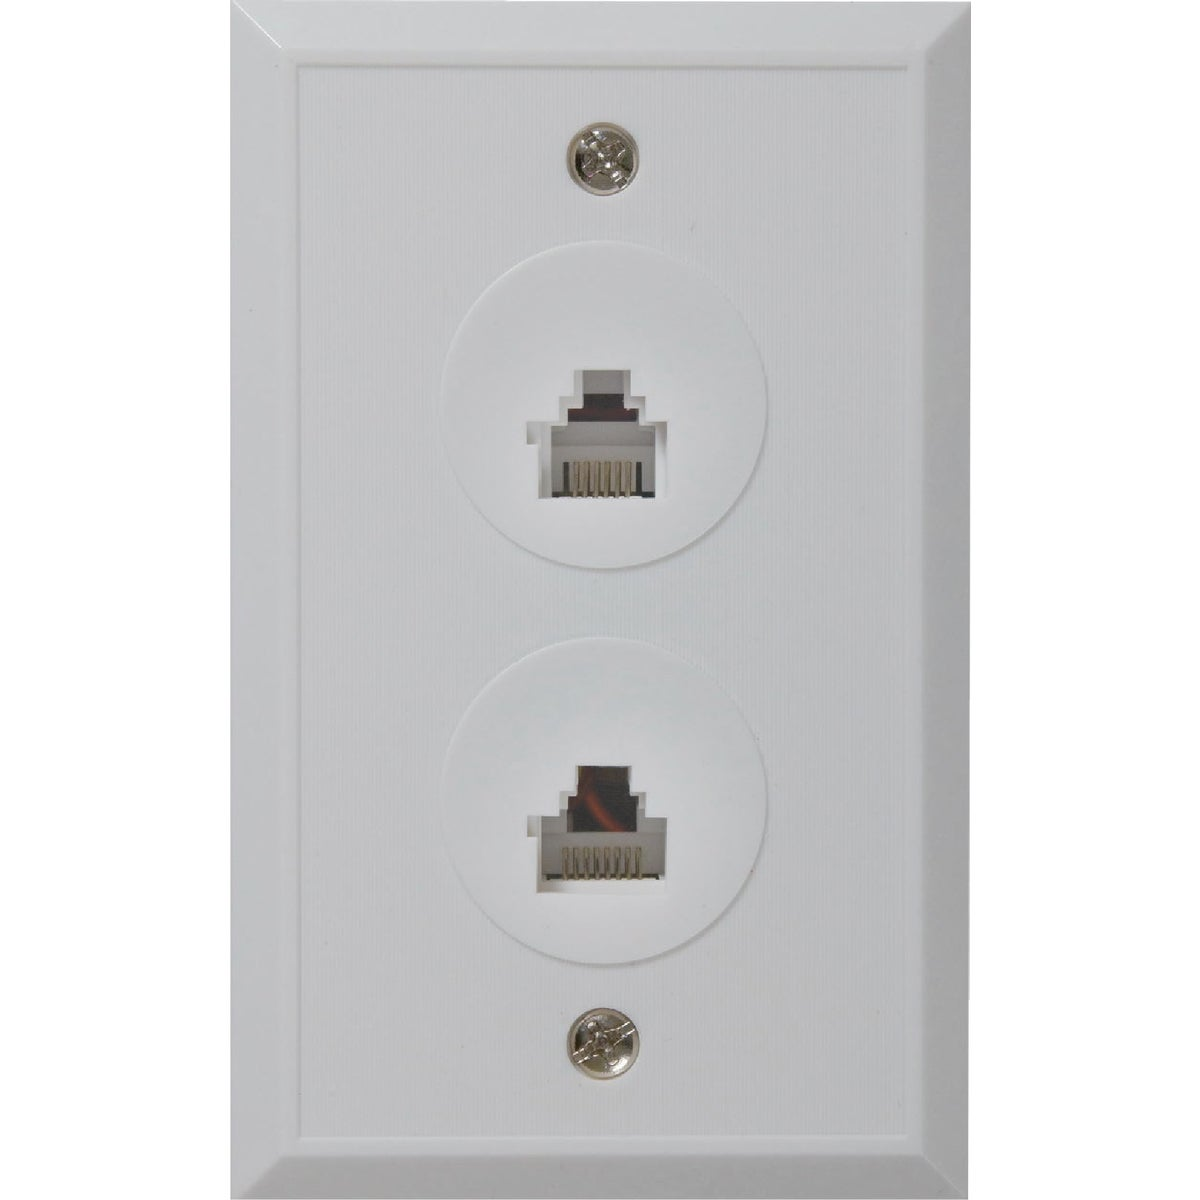 WHT RJ12/RJ45 WALL PLATE - TPH551R by Audiovox Accessories